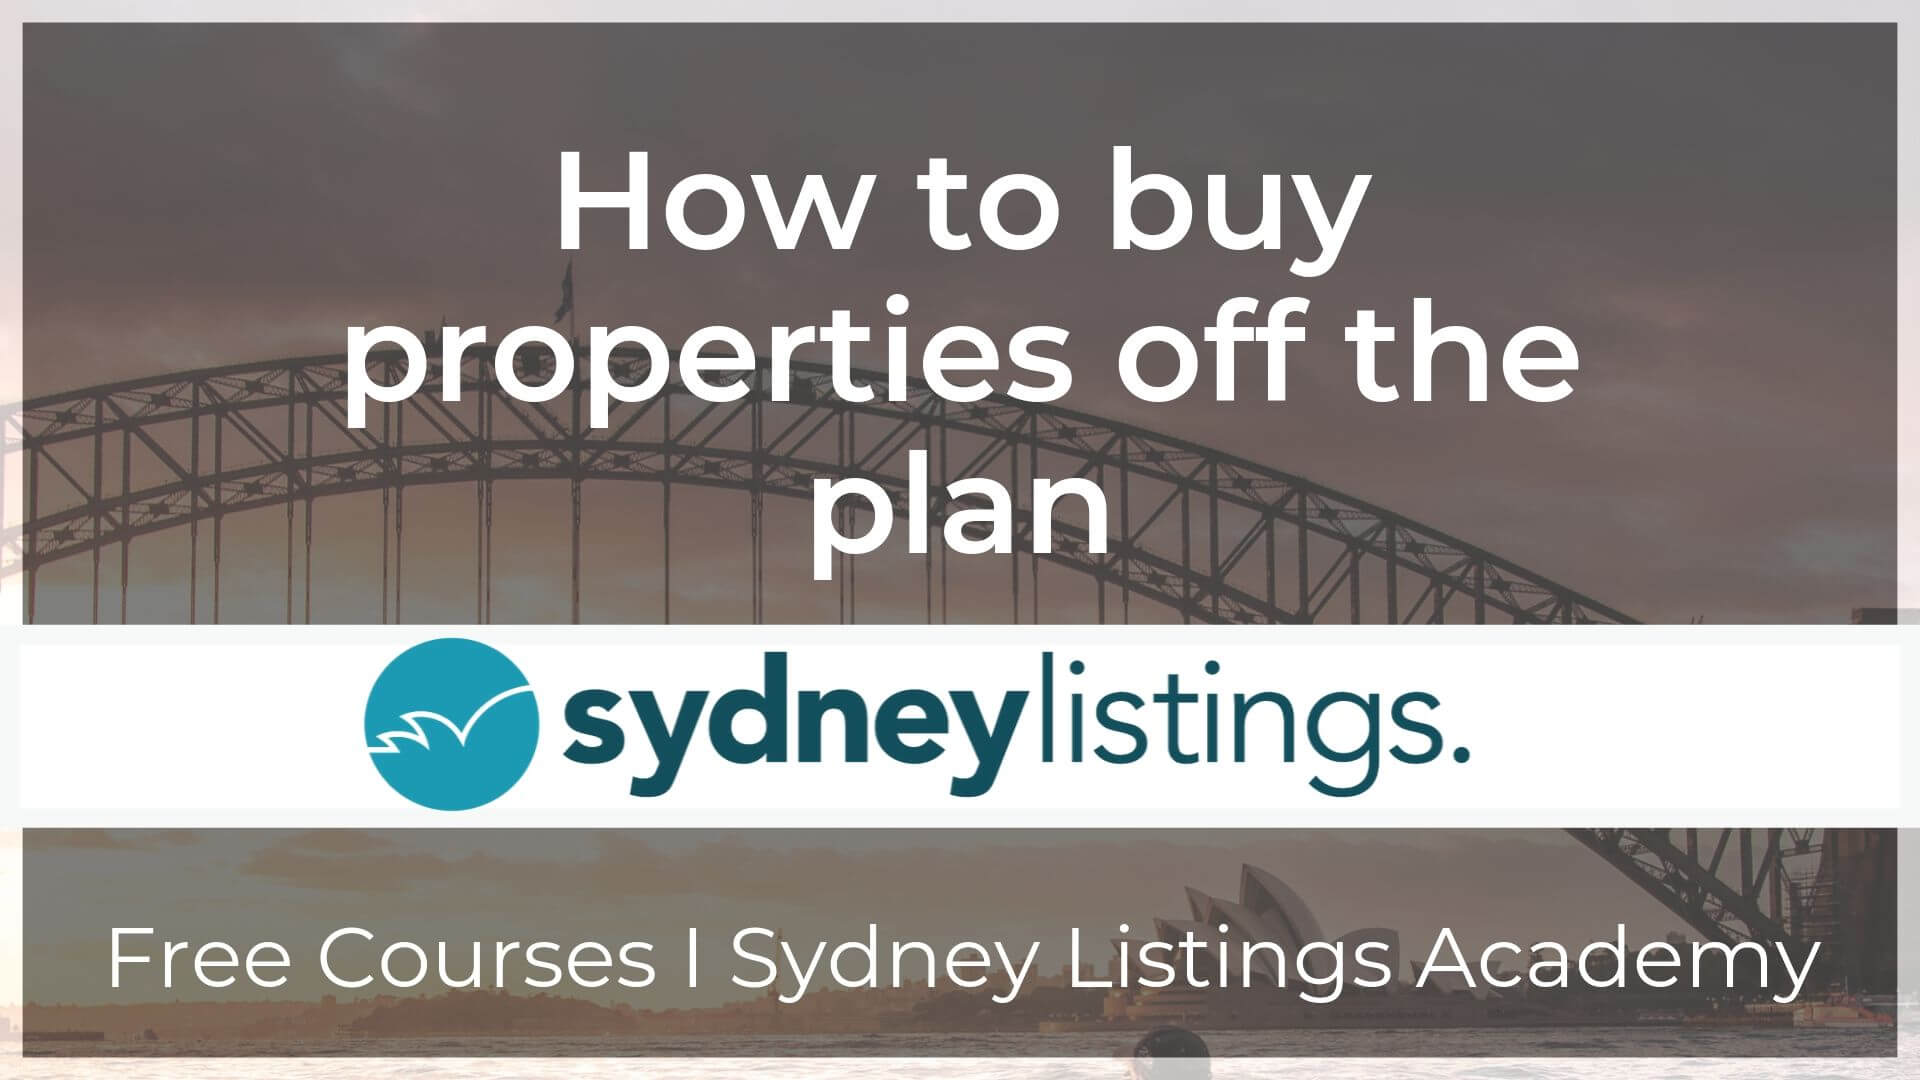 Course Guide on how to buy properties off the plan